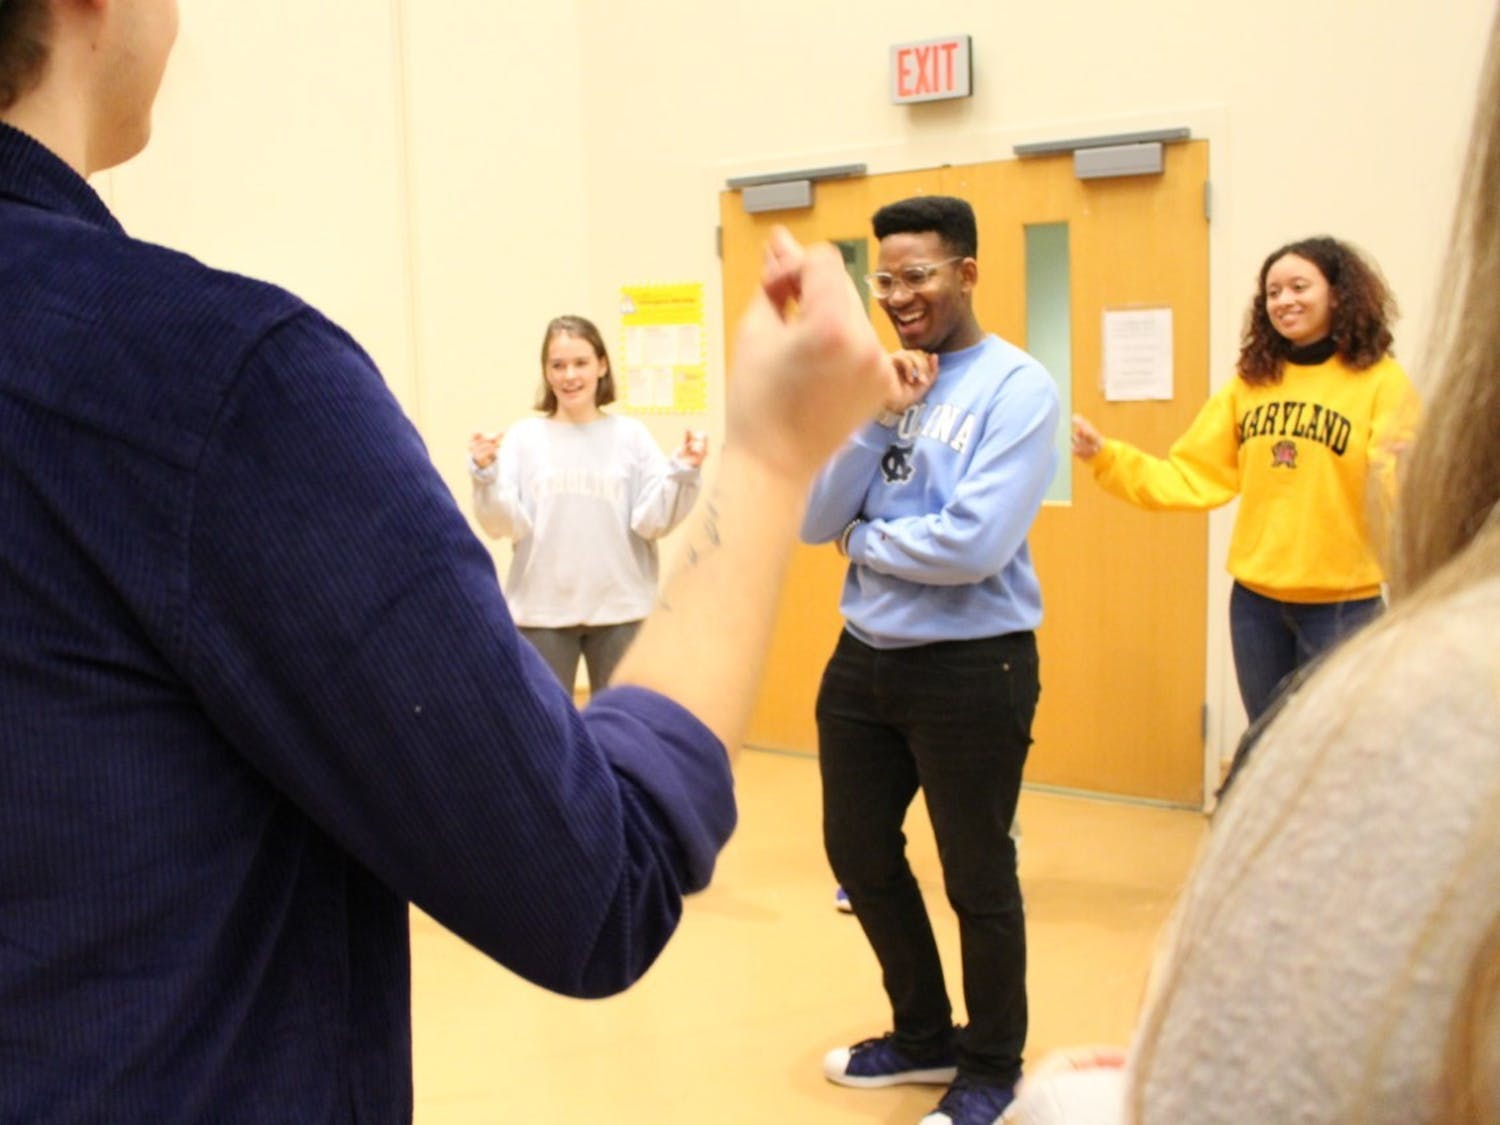 Performers rehearse for this year's Me Too Monologues, opening on Jan. 23, 2020 at 7 p.m. The monologues will highlight identity and growth. Photo courtesy of David Navalinsky.